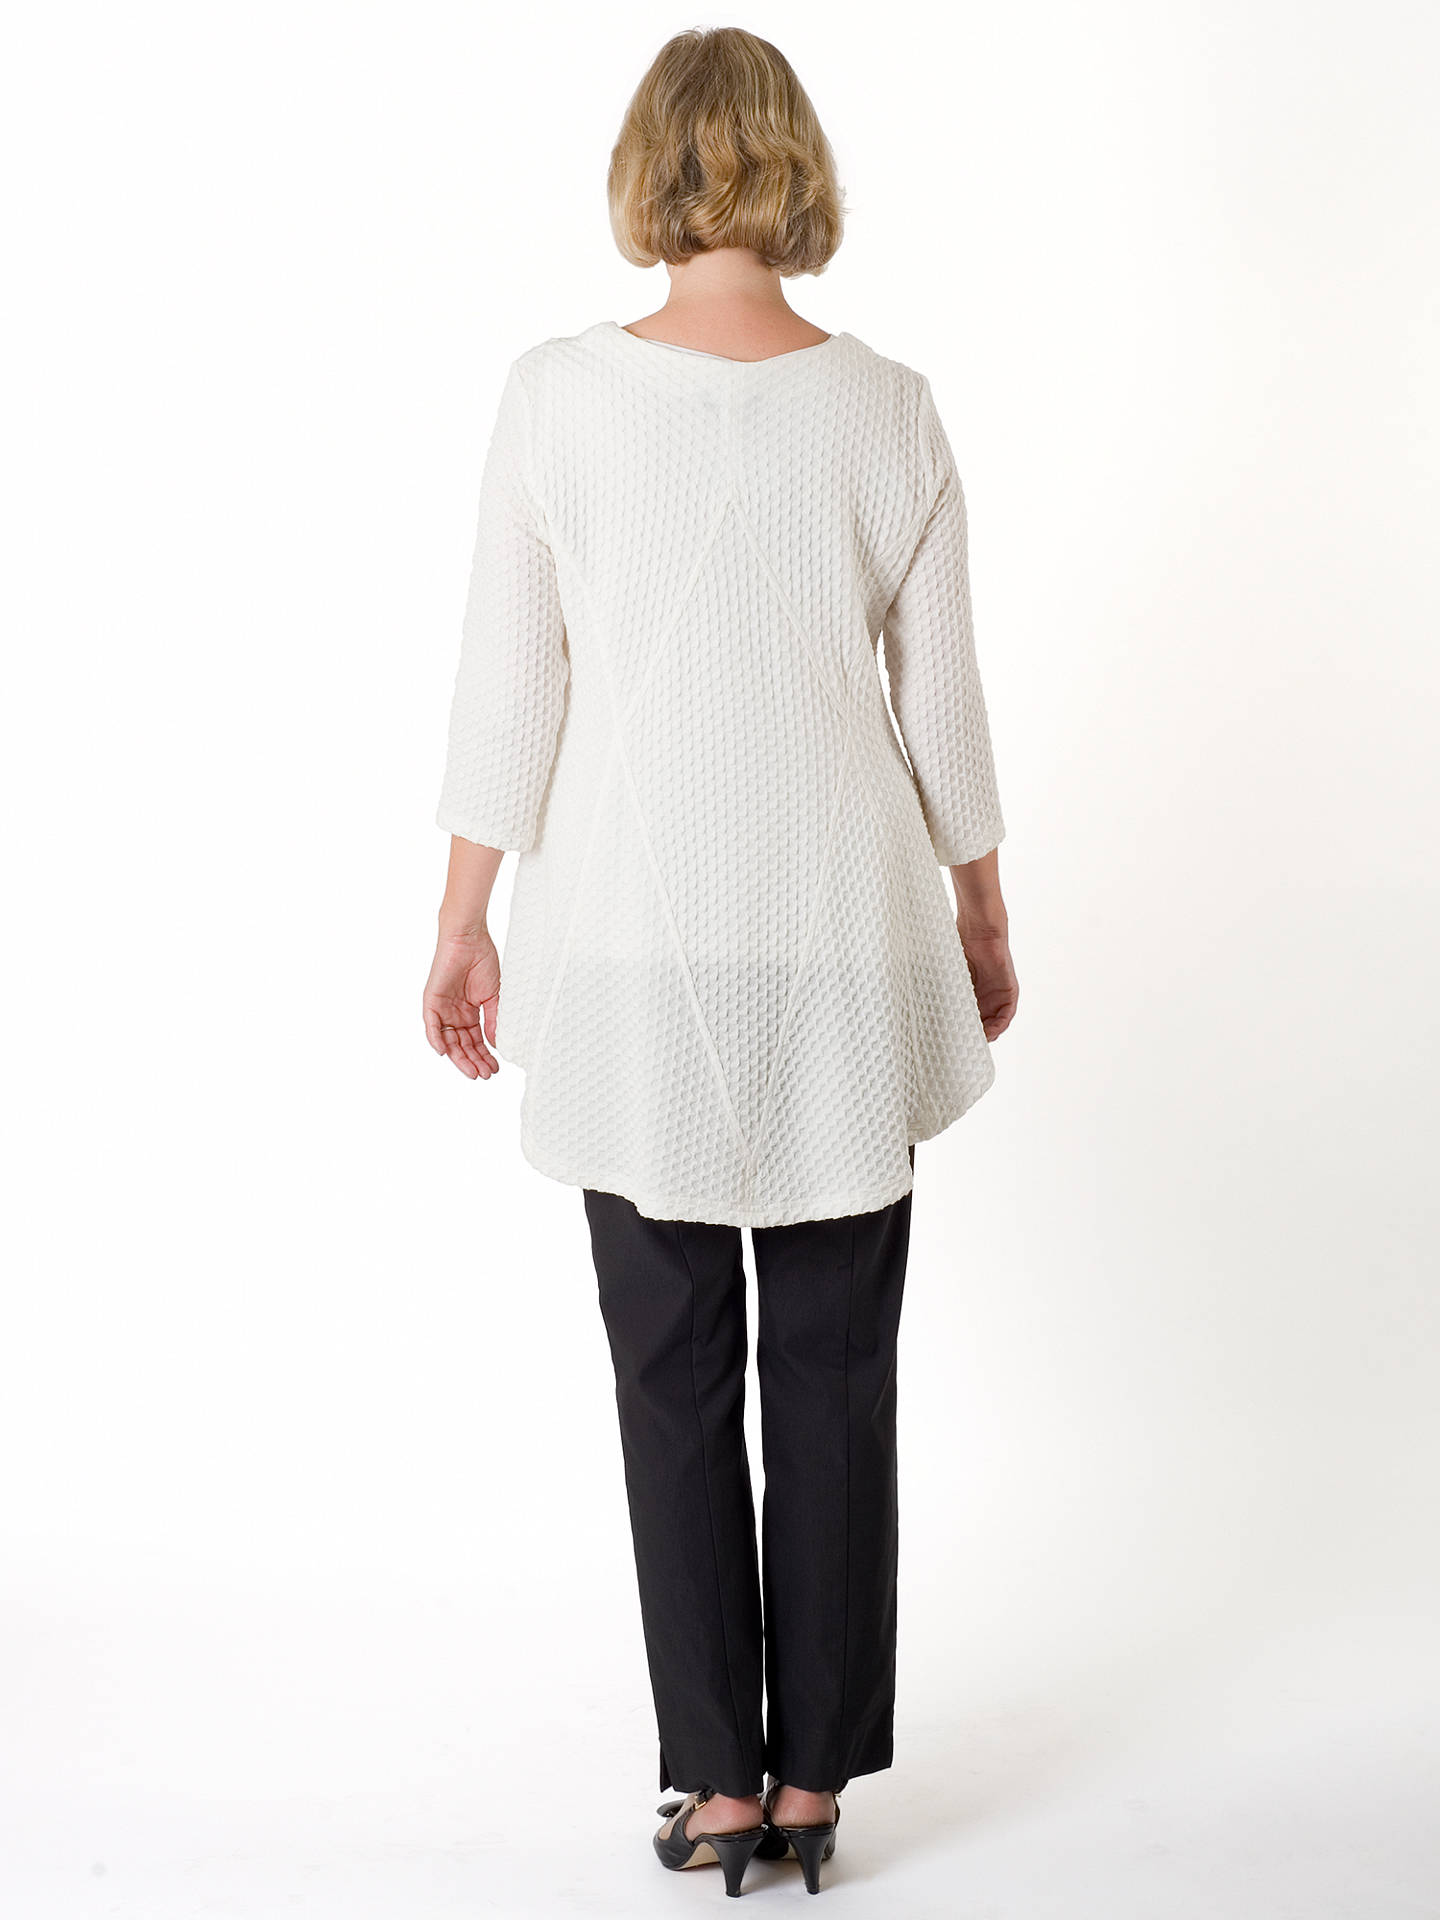 BuyChesca Cloque Jacquard Jersey Top, Cream, 12-14 Online at johnlewis.com